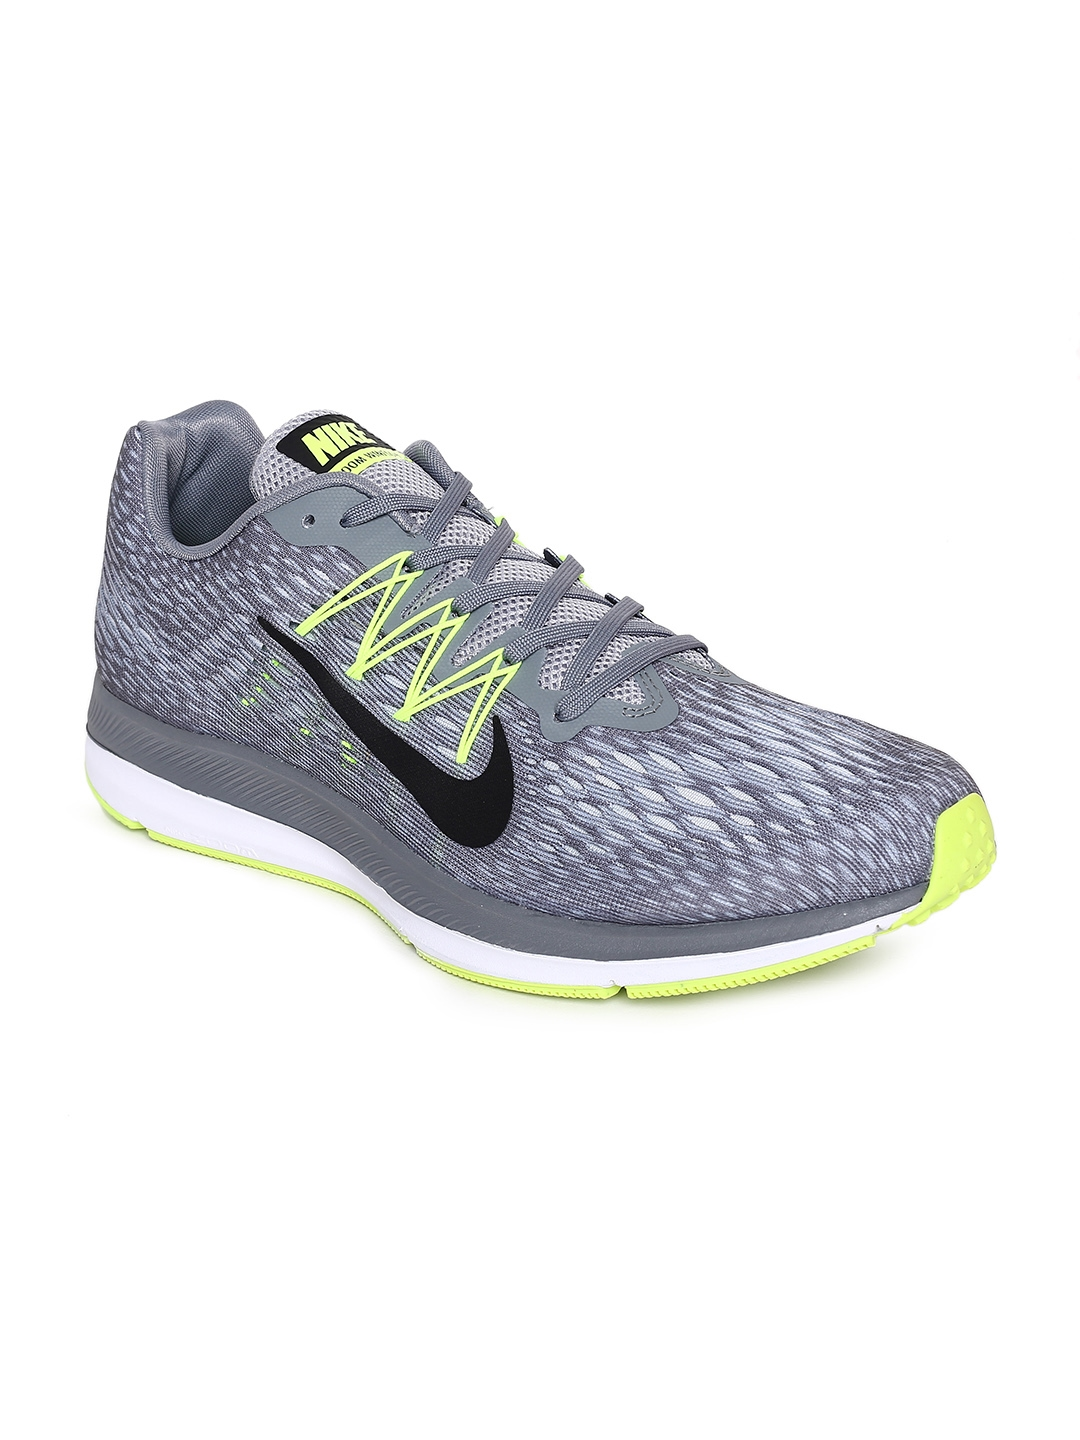 new style 43a92 1cd8b Nike Men Grey Air Zoom Winflo 5 Running Shoes